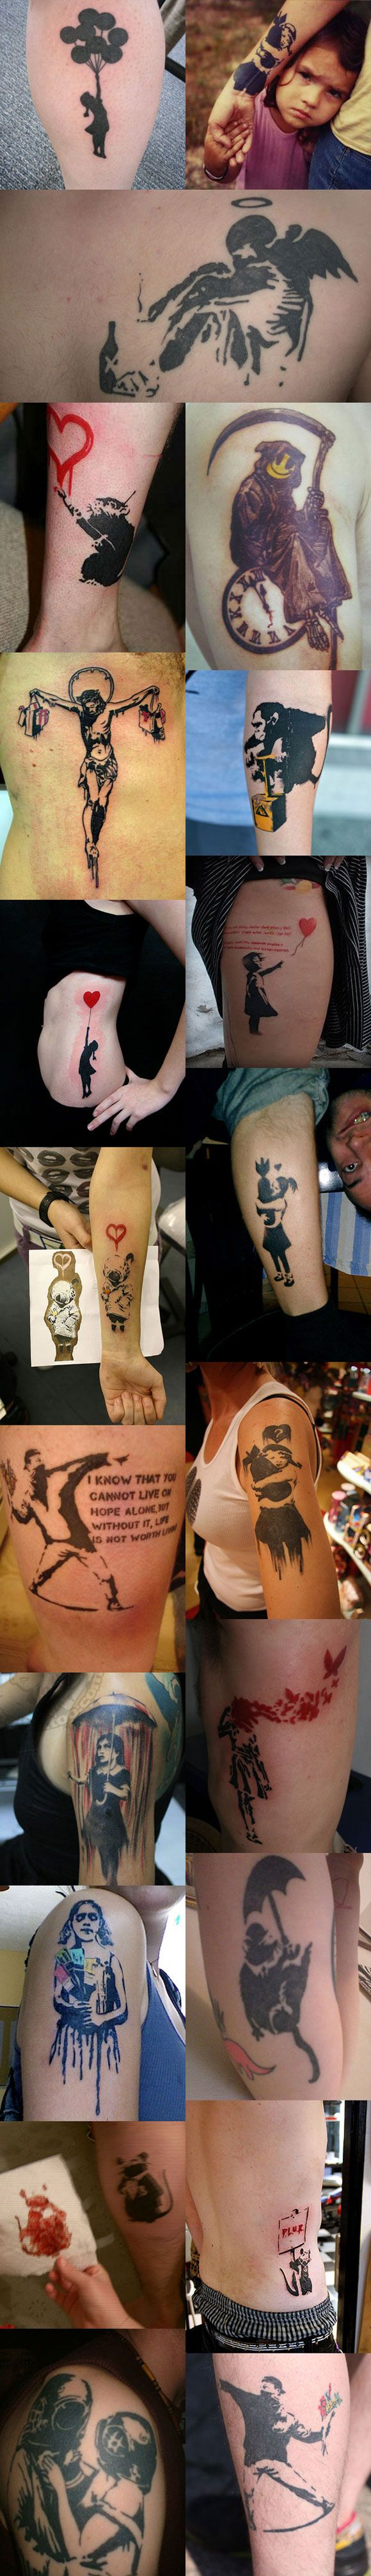 Cool tattoos inspired by Banksy